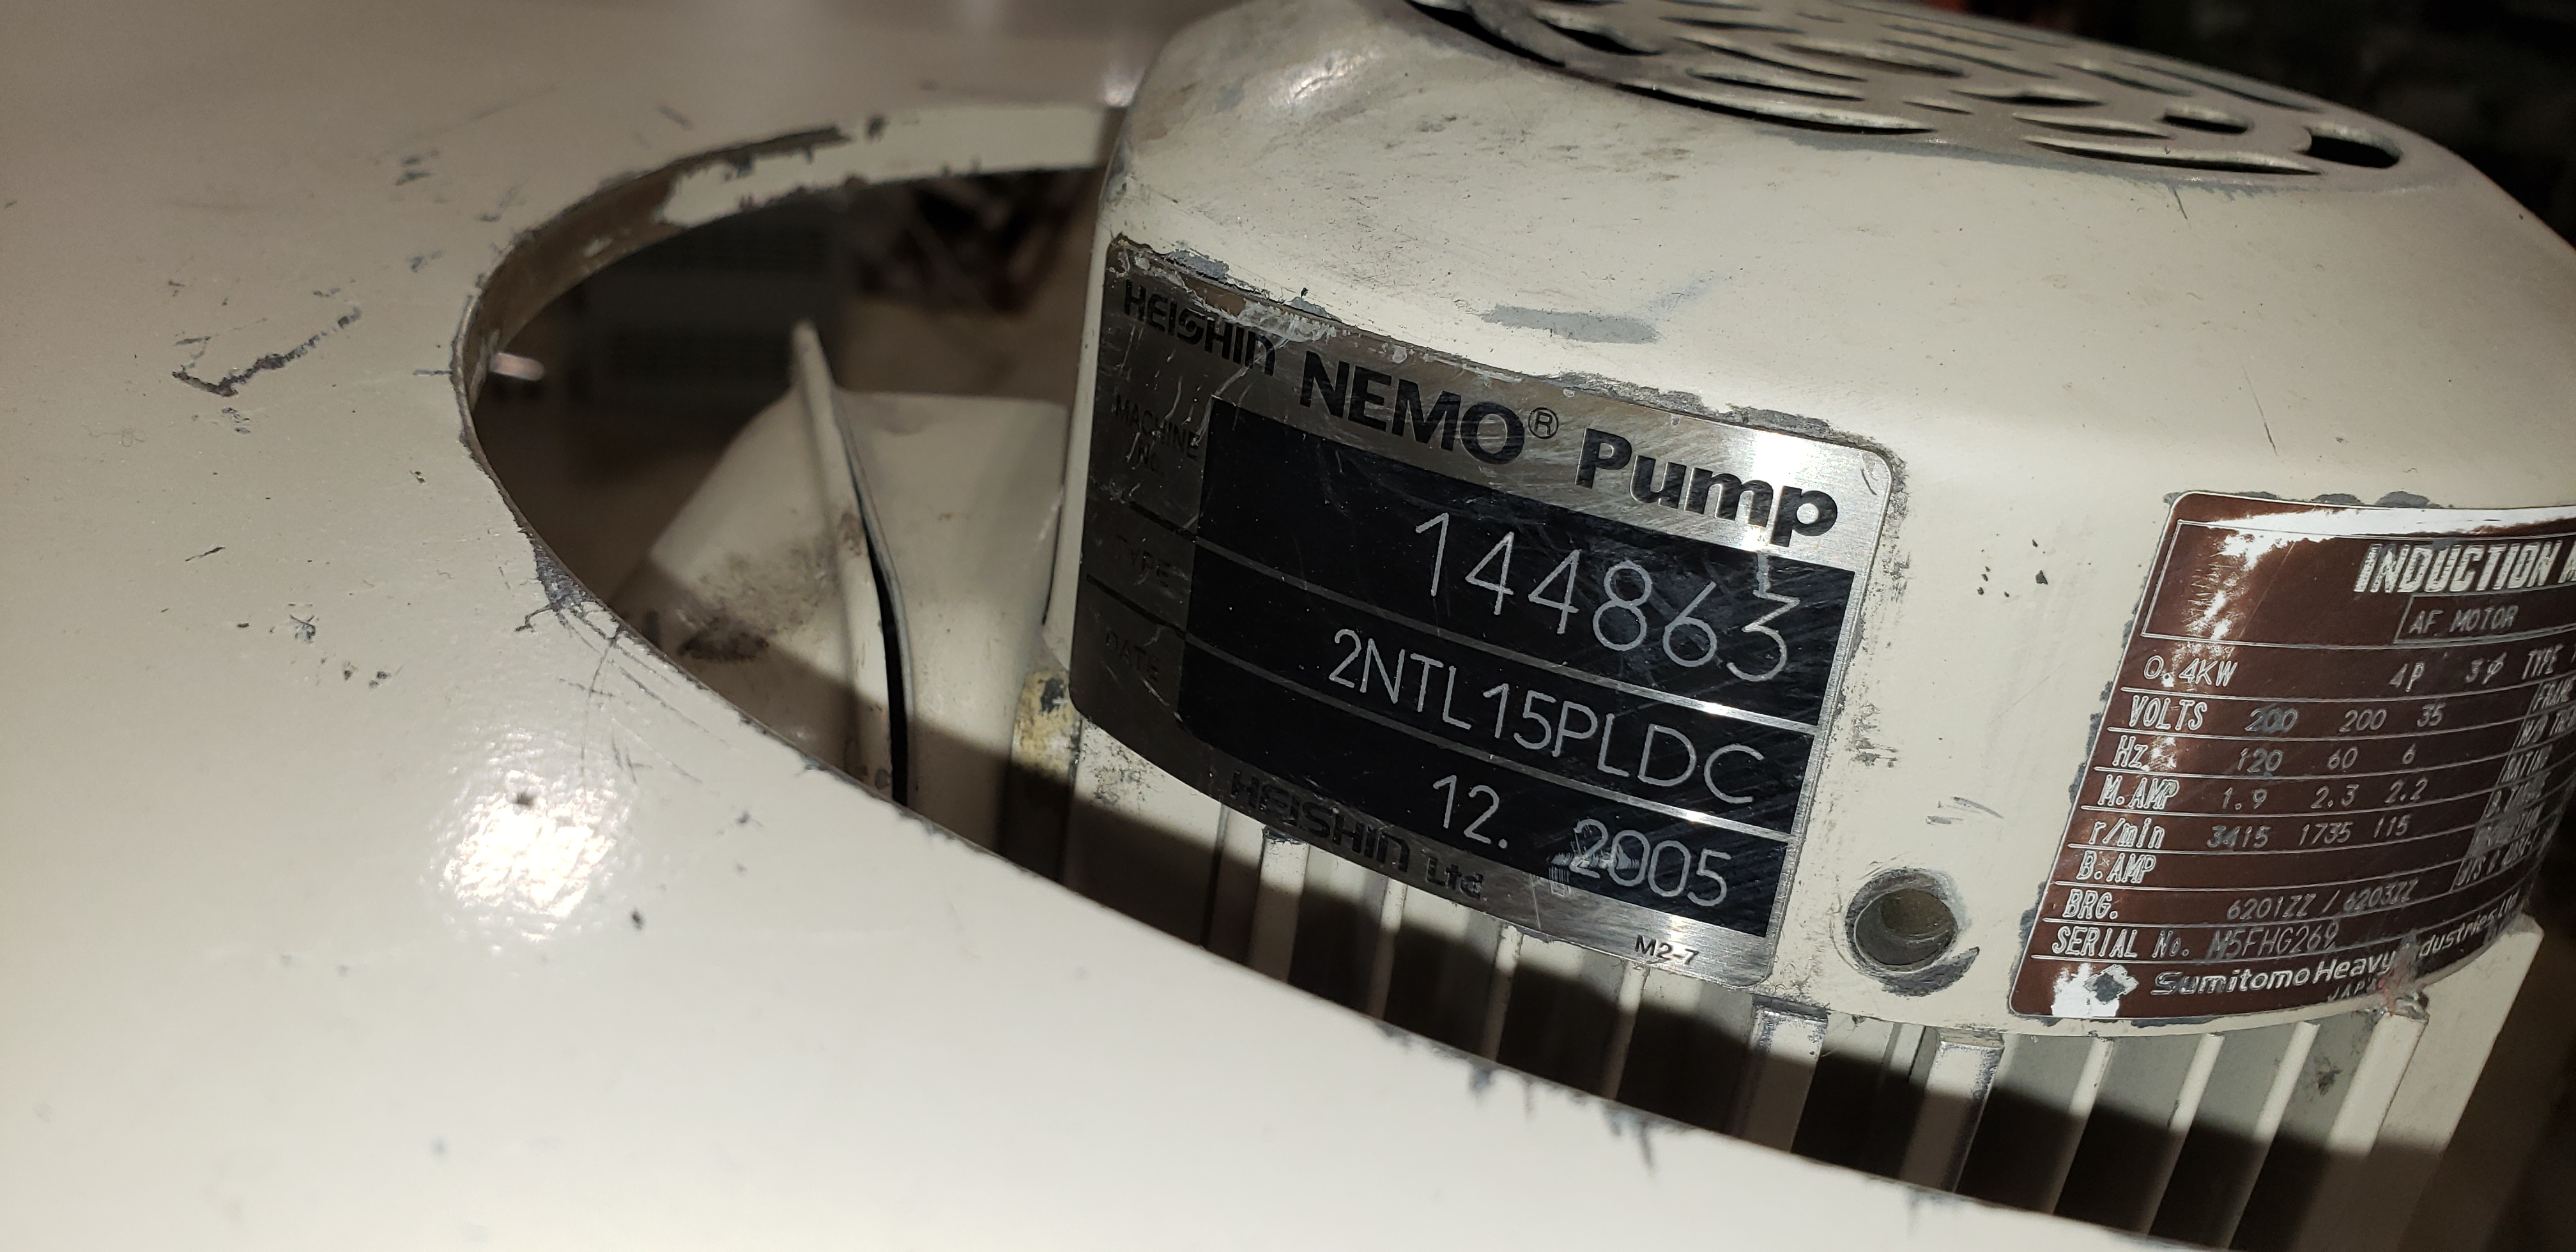 Double Pump Cart - 2 Identical HEISHIN NEMO pumps - Image 17 of 21